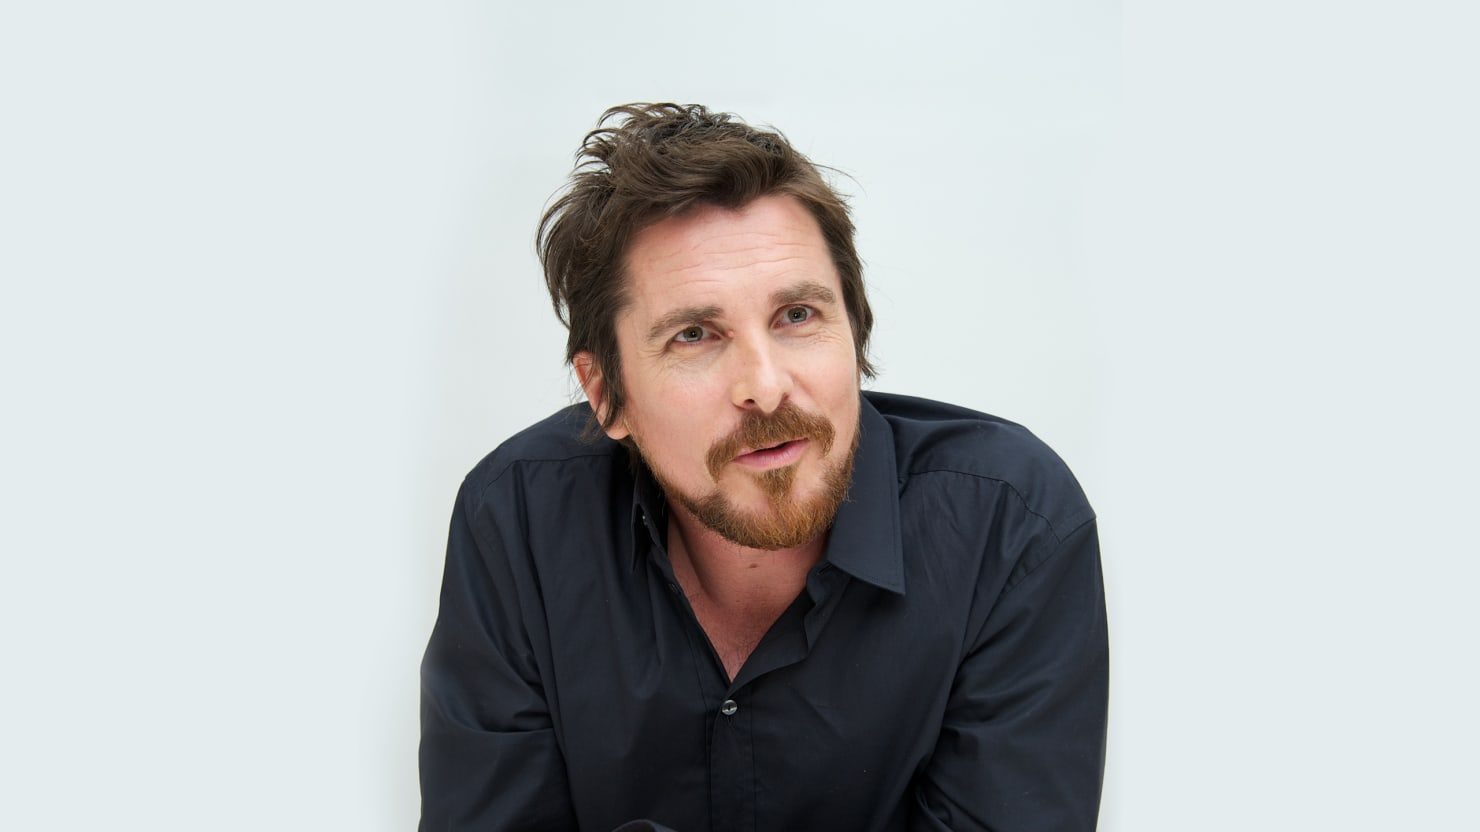 Christian Bale on Hollywood Hedonism and Chris Rock's Divisive Oscars - The Daily Beast